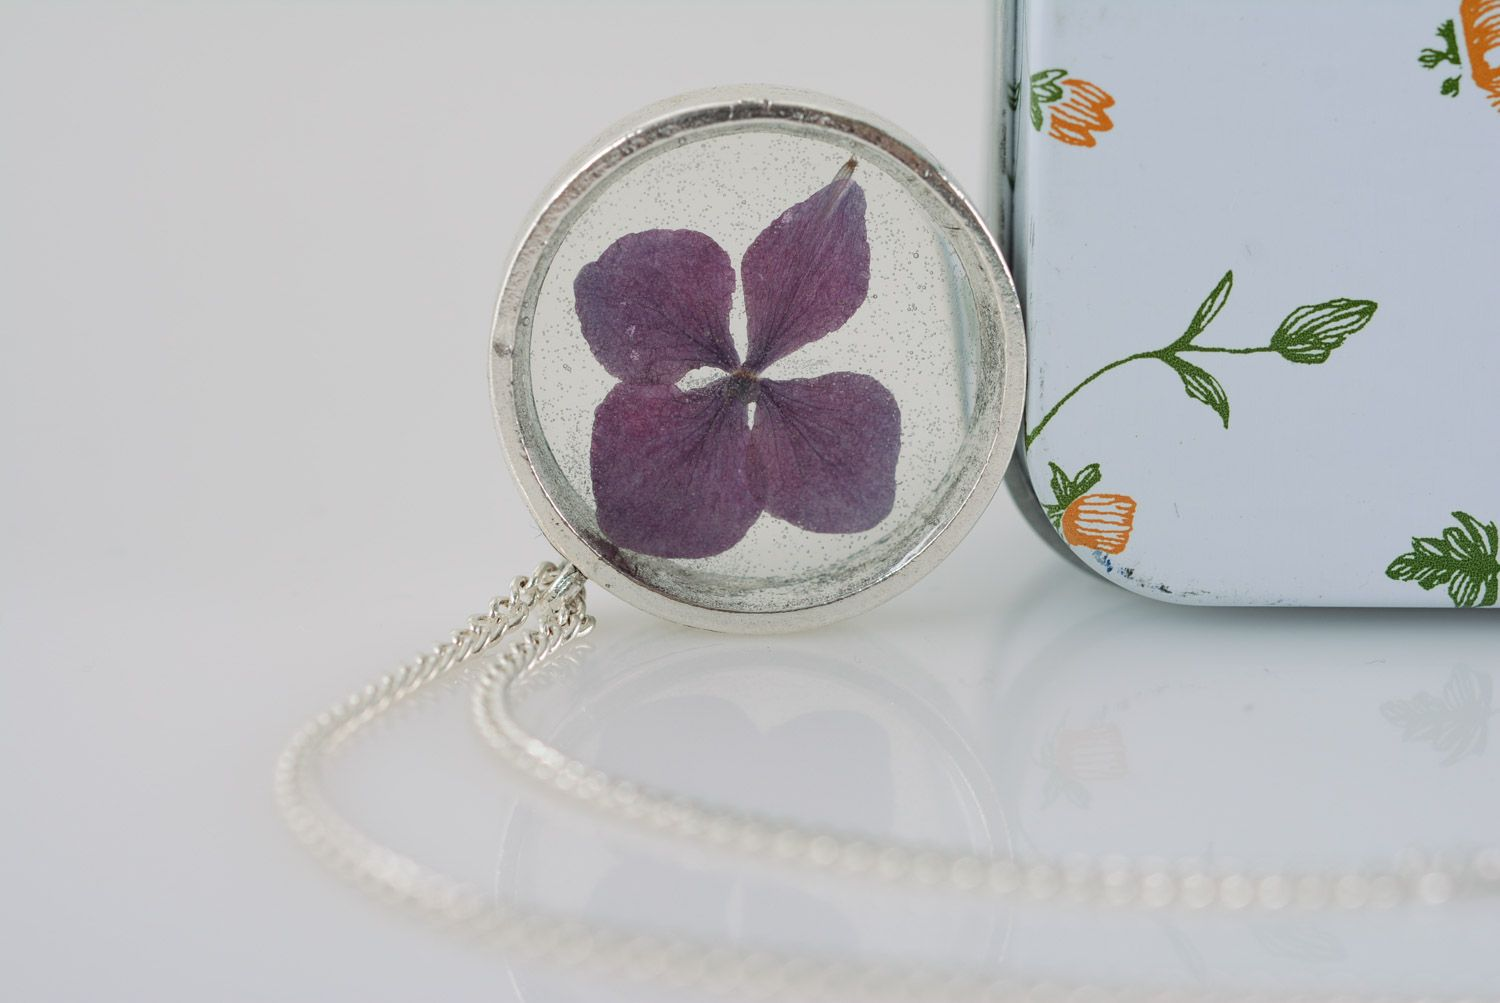 Handmade women's botanical pendant with real violet flower coated with epoxy photo 1